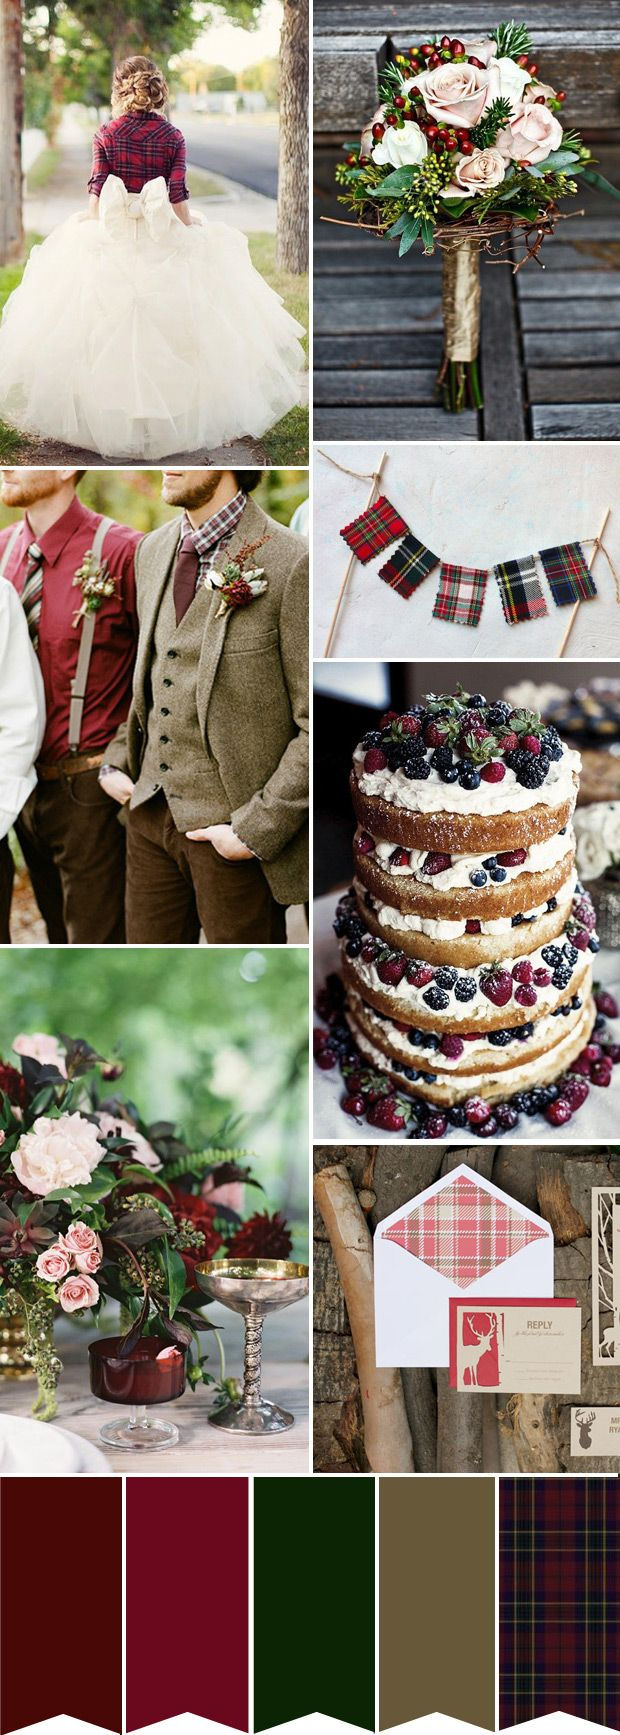 A little bit of Tartan: A Red and Green Winter Wedding Colour Palette | www.onefabday.com // hmmmmmmm... :)